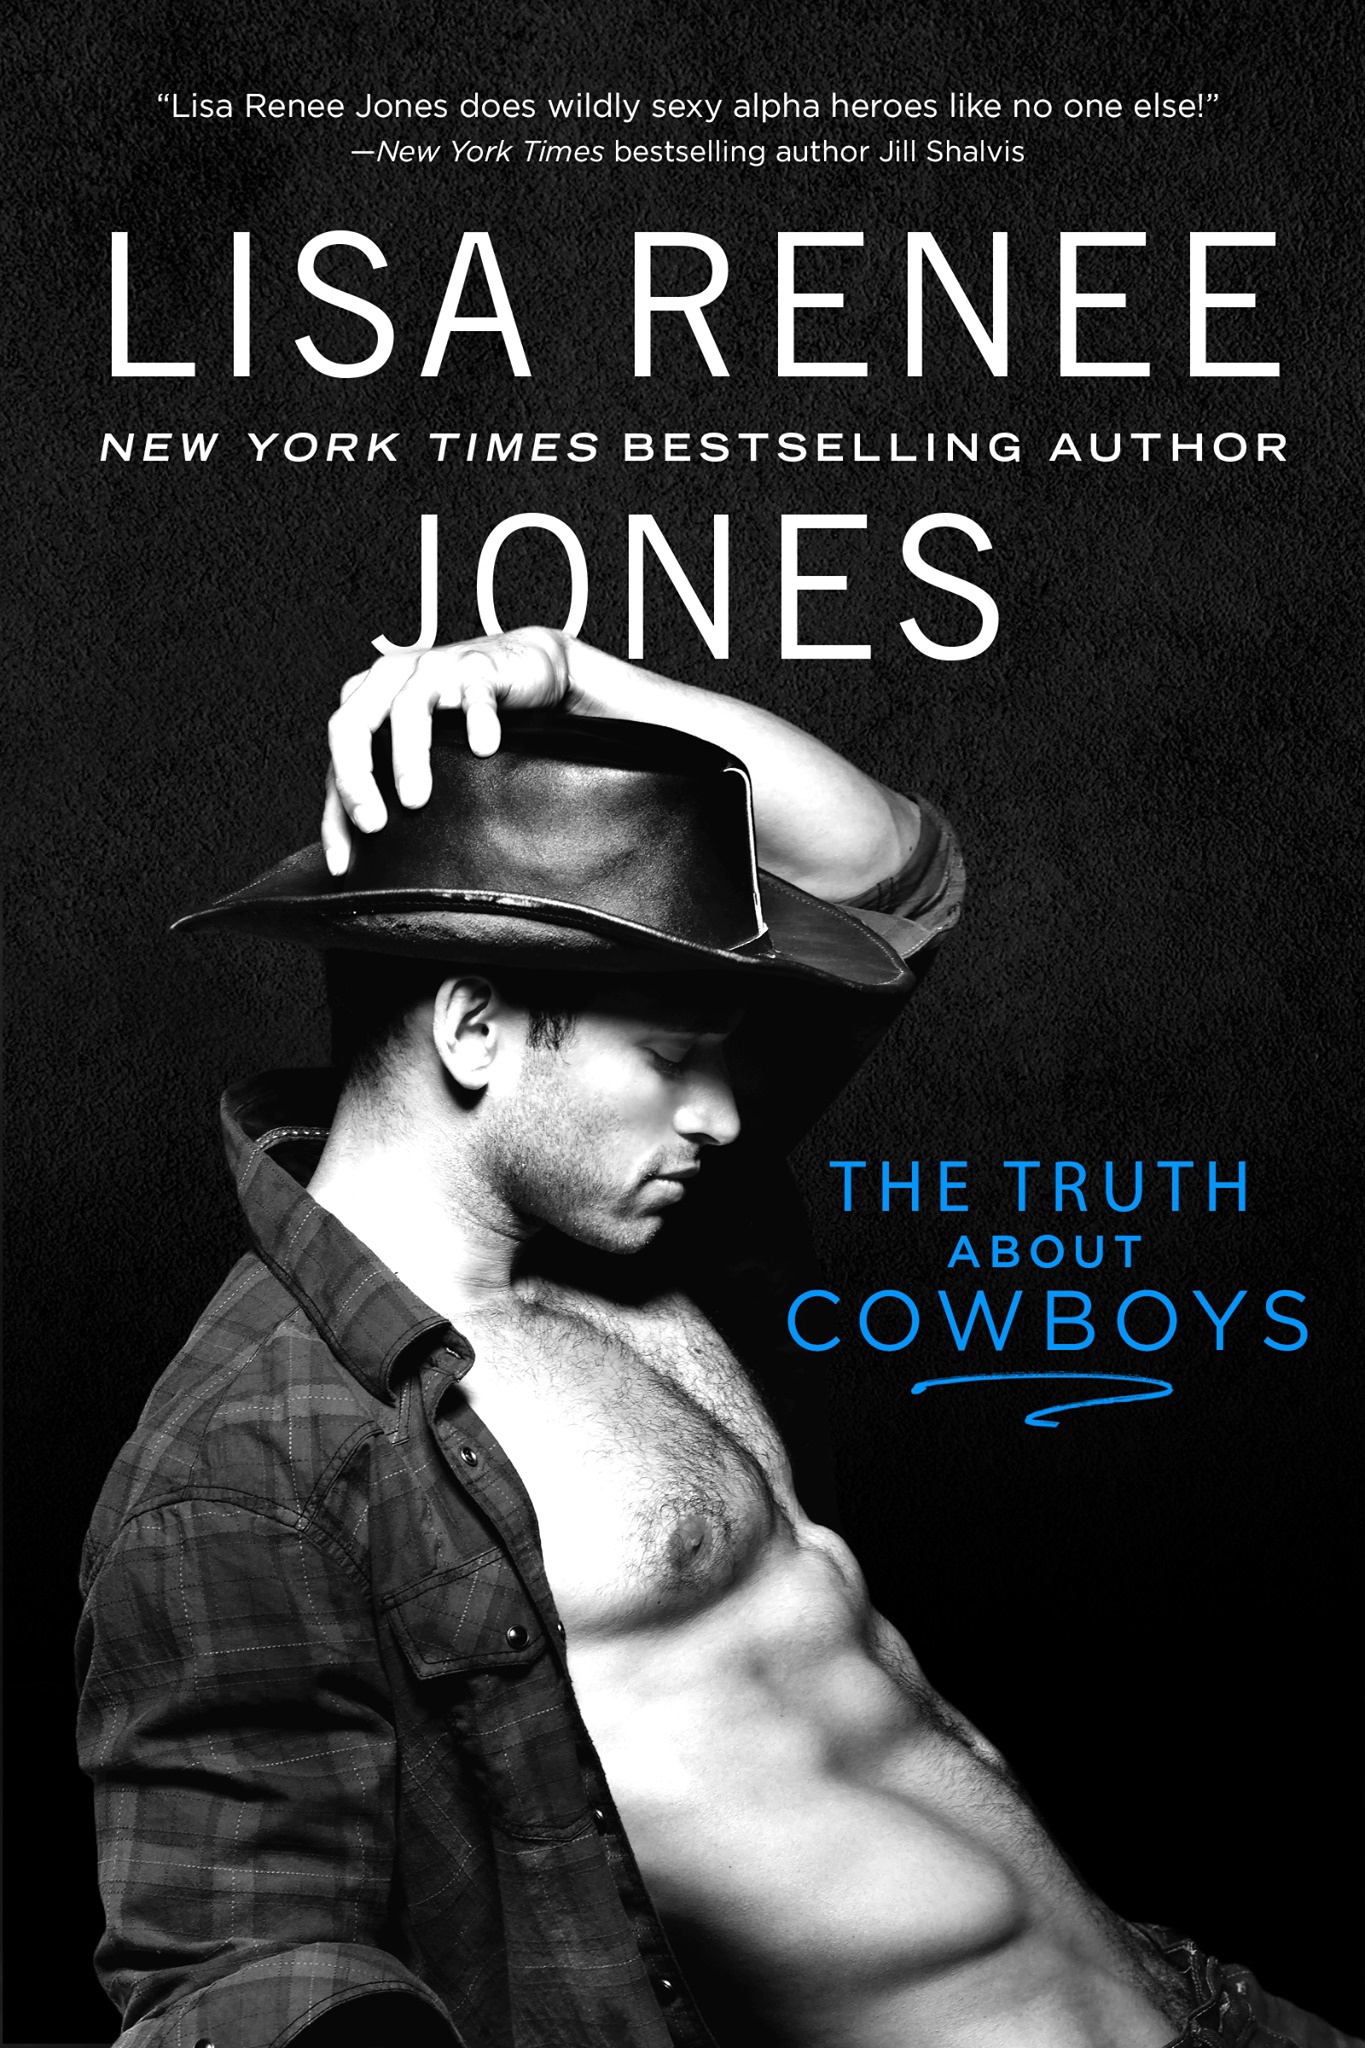 THE TRUTH ABOUT COWBOYS